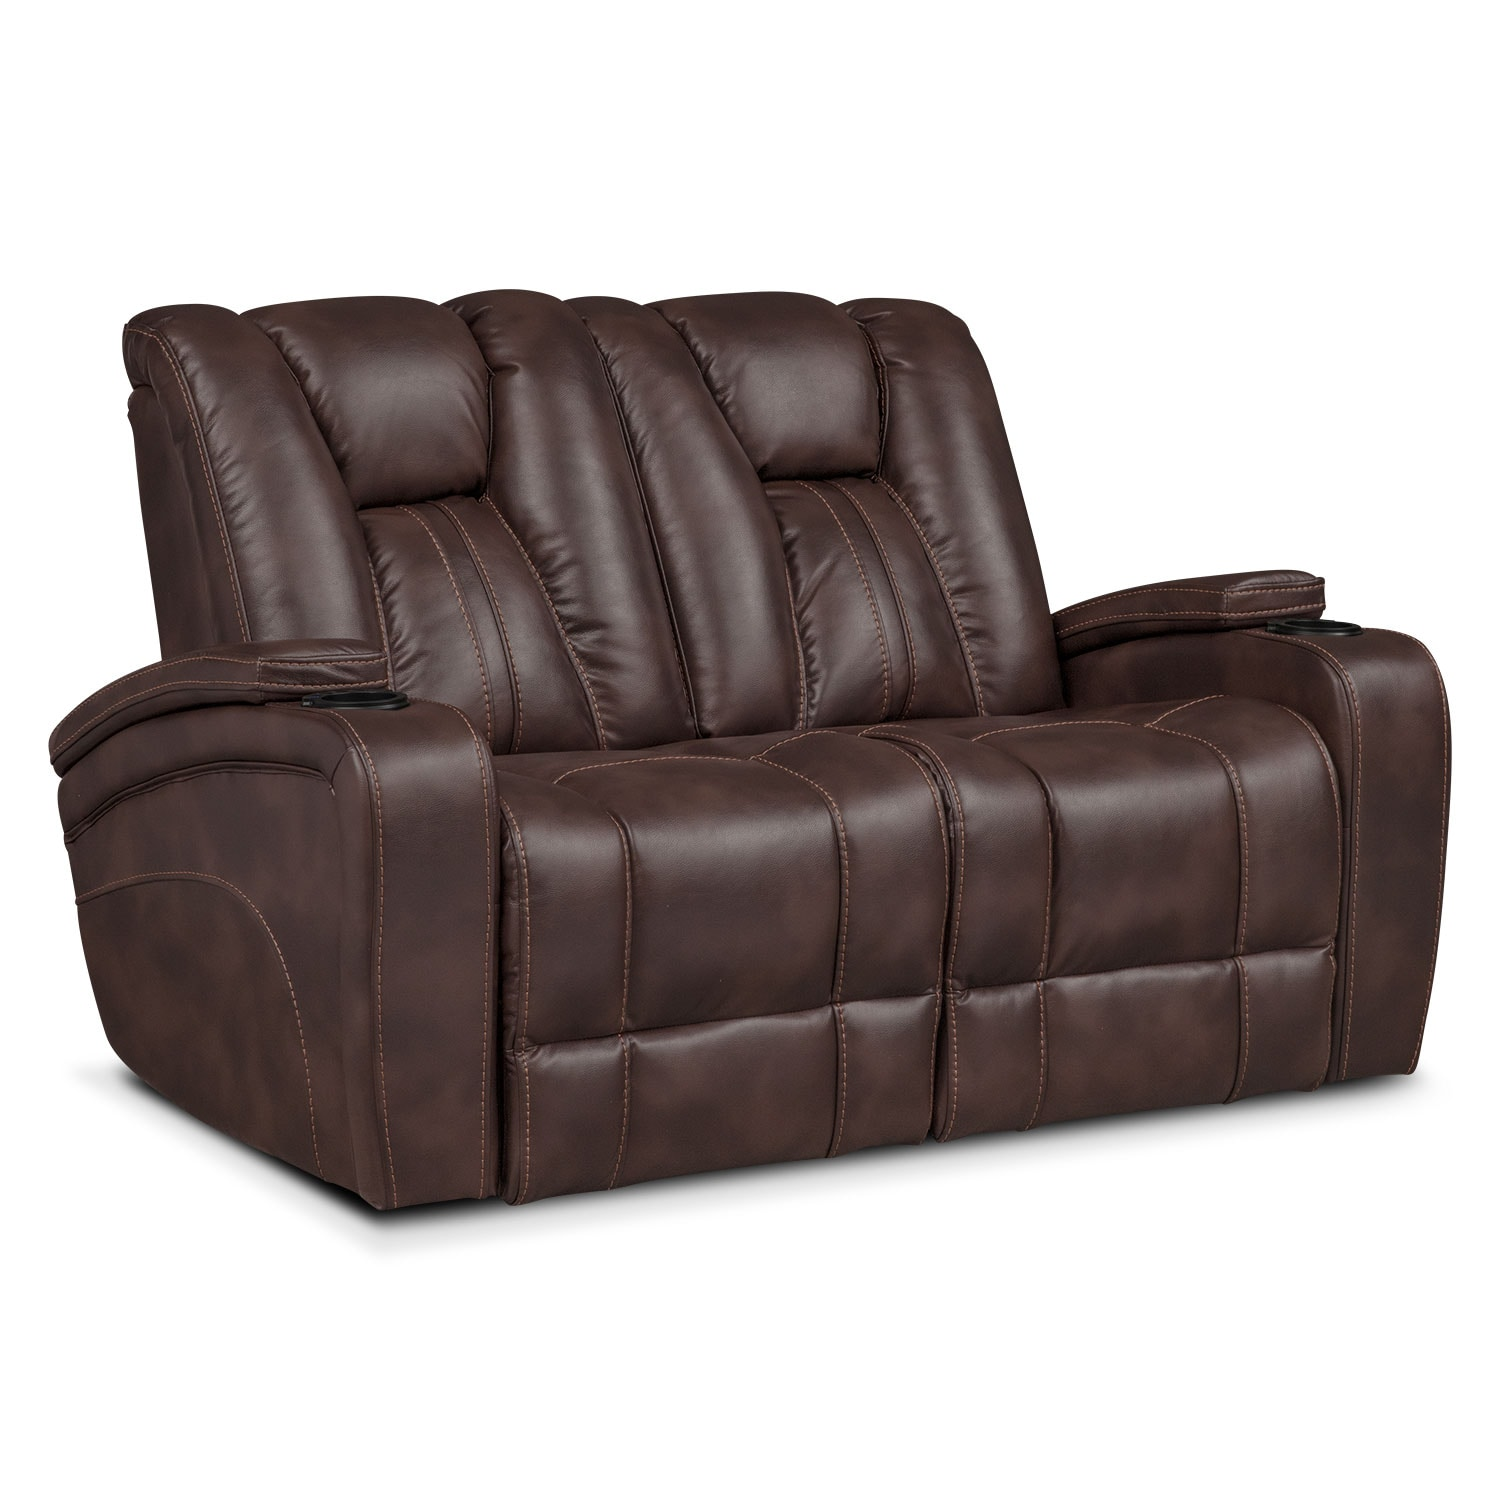 Pulsar Power Reclining Sofa Power Reclining Loveseat and Power Recliner Set - Brown by One80  sc 1 st  American Signature Furniture : brown leather recliner sofas - islam-shia.org